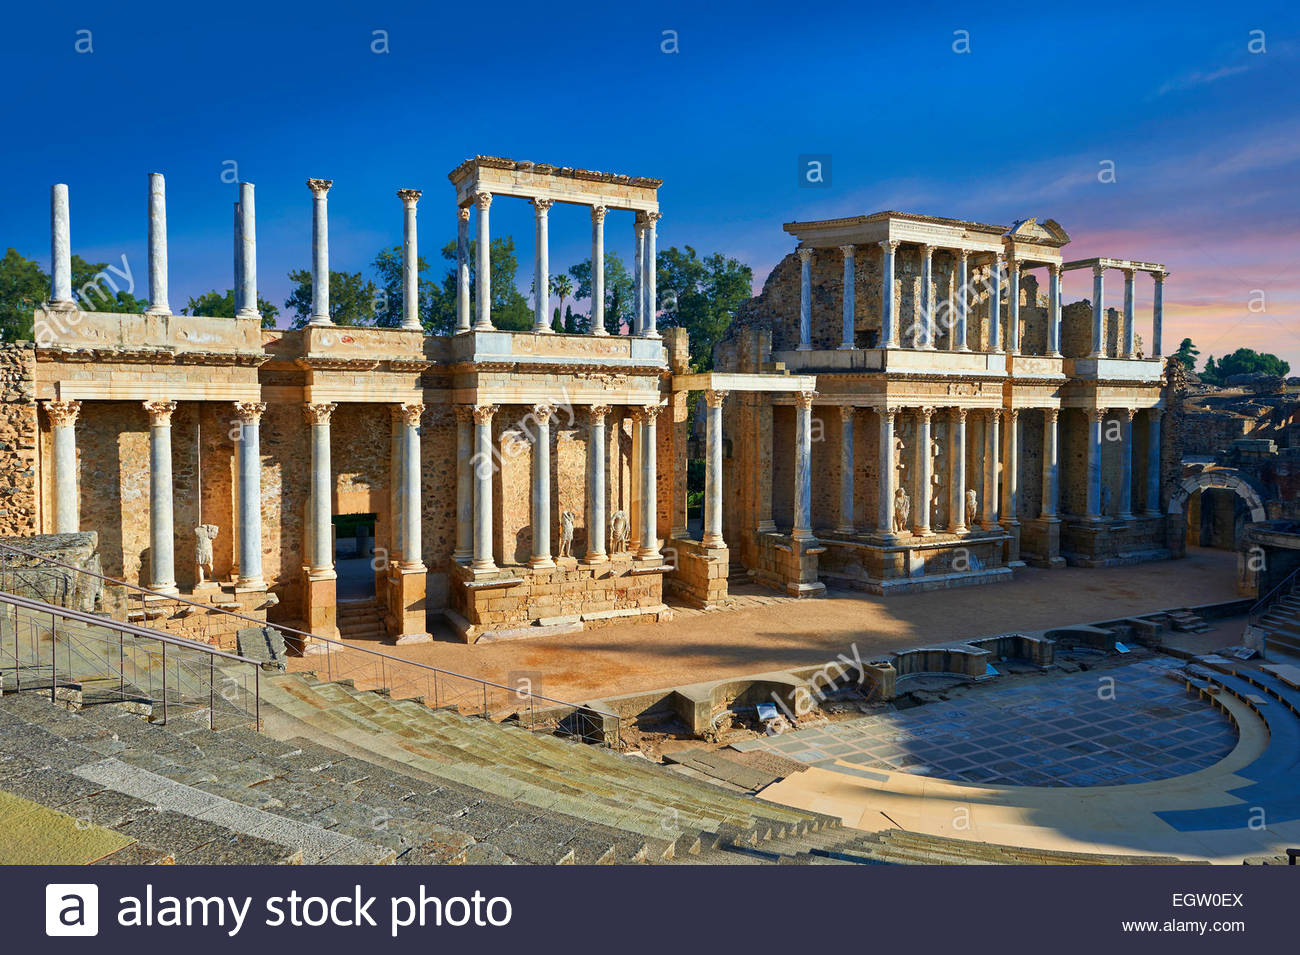 Roman theatre of the Roman colony of Emerita Augusta (Mérida) dedicated by the consul Marcus Vipsanius Agrippa - Stock Image